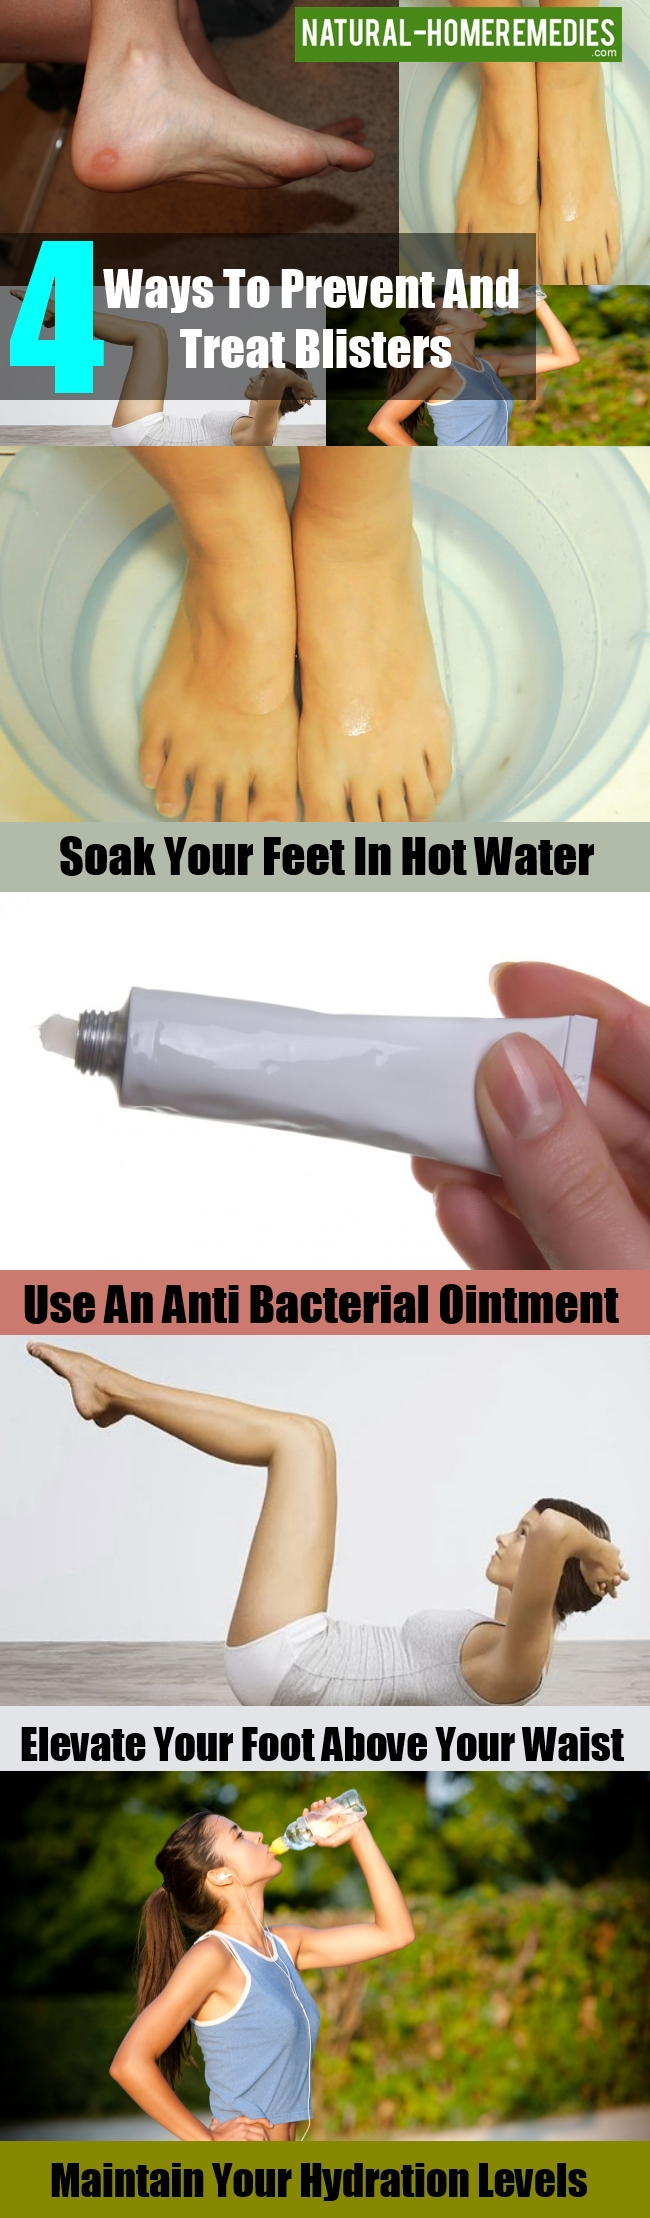 Natural Ways To Heal Foot Blisters